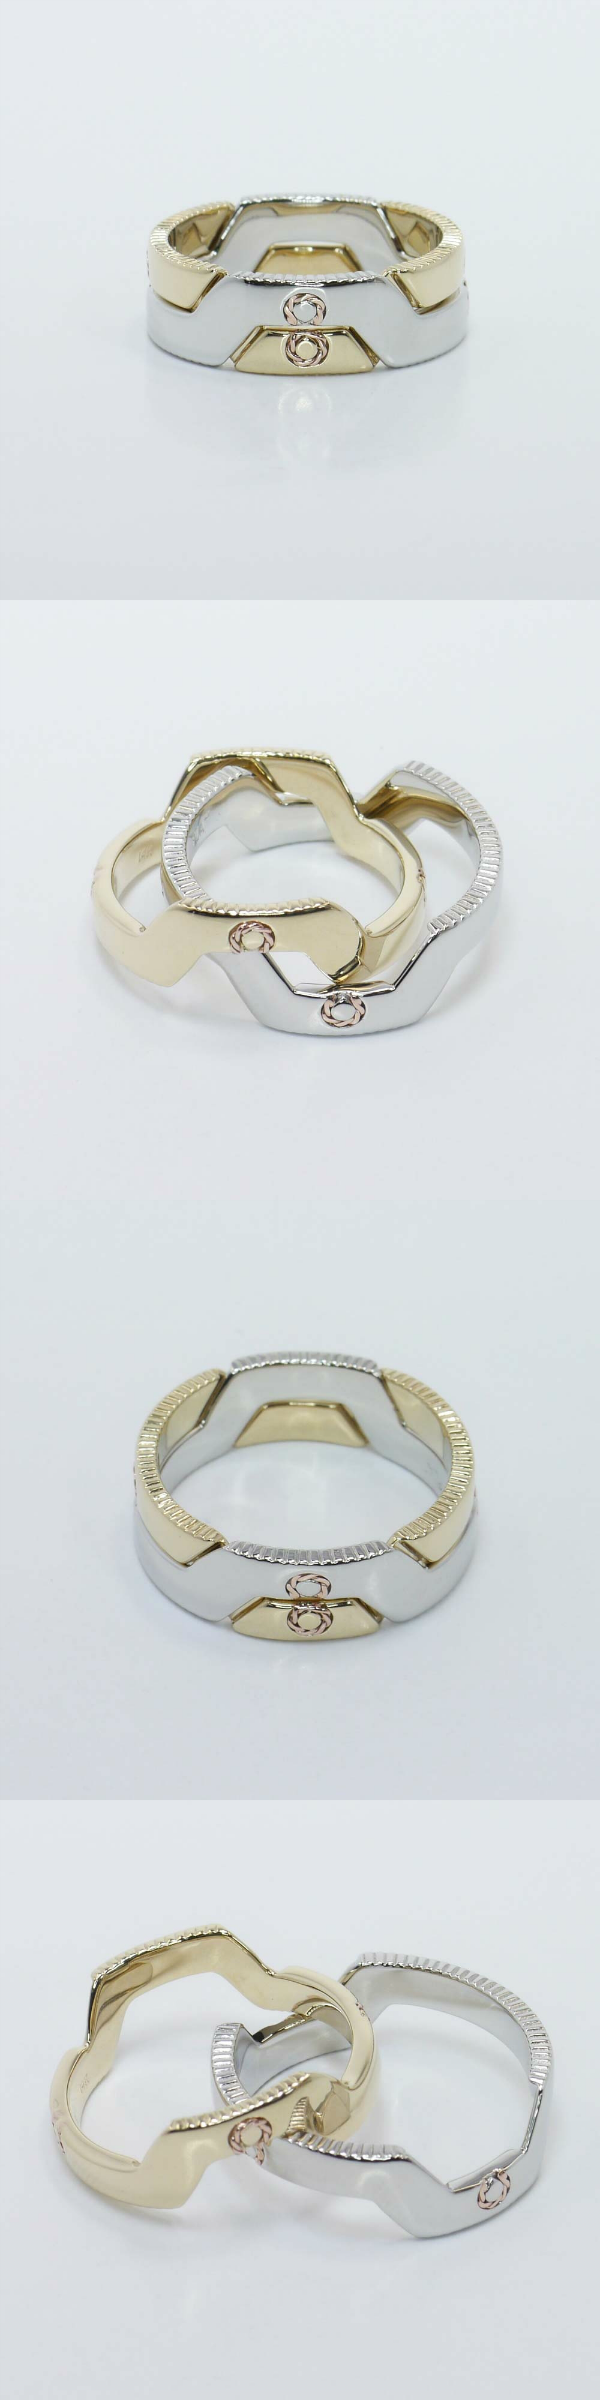 Custom Interlocking Puzzle Bands! Interlocking bands represent the couple with infinity symbols to signify a long-lasting union. Metal: Platinum Prong Metal: Yellow Gold, Accent Metal: Rose Gold Setting Cost: $3,395 https://www.brilliance.com/recently-purchased-rings/custom-interlocking-puzzle-mens-band